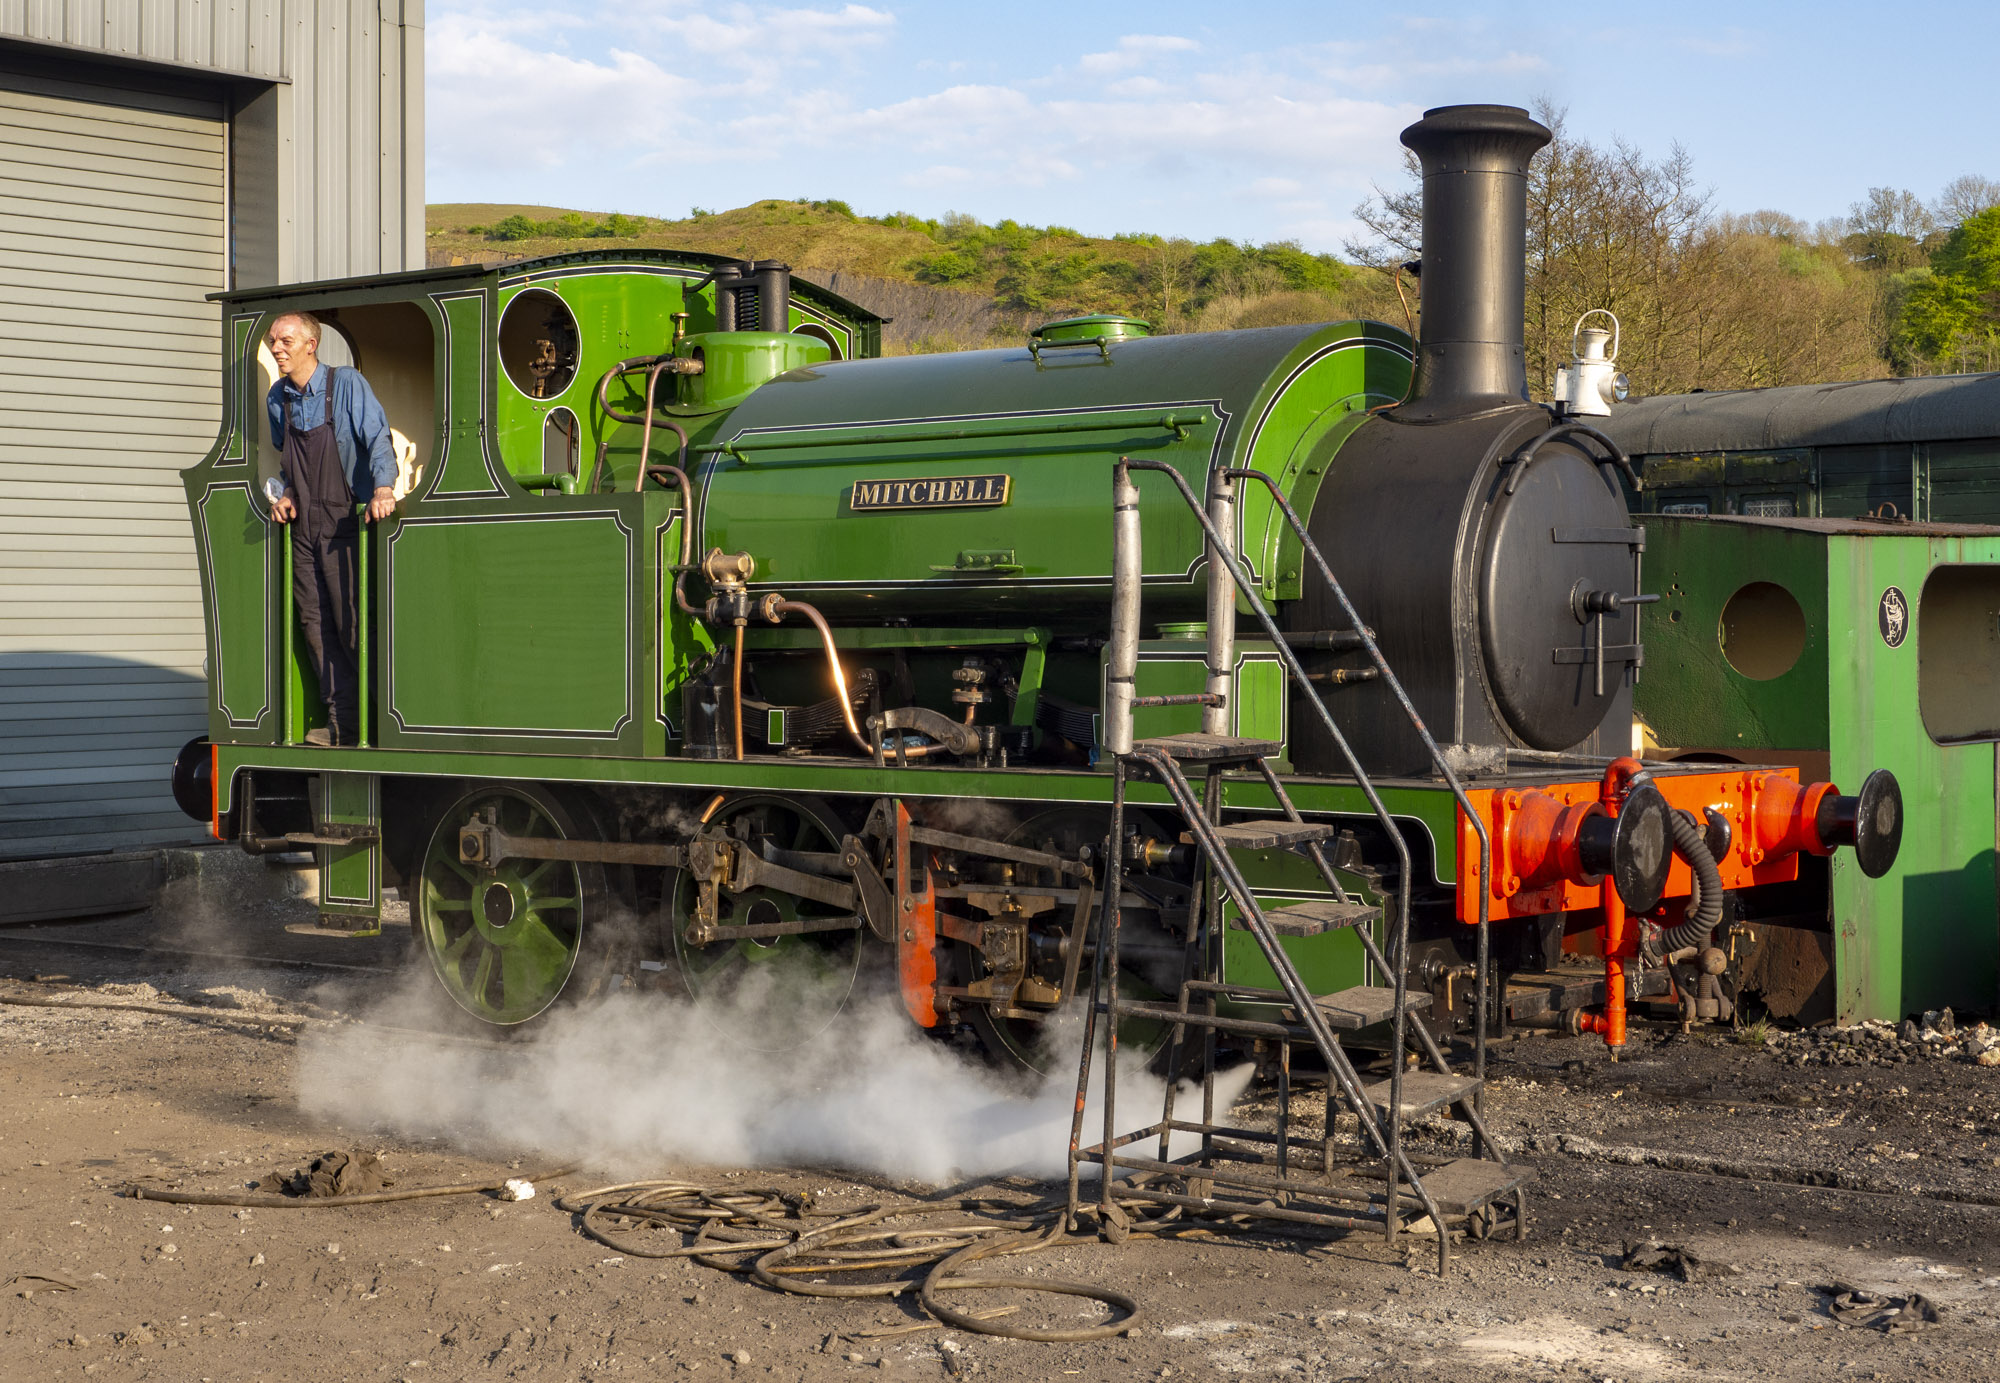 Illingworth, Embsay station, 6th May 2018 (David Oxtaby)